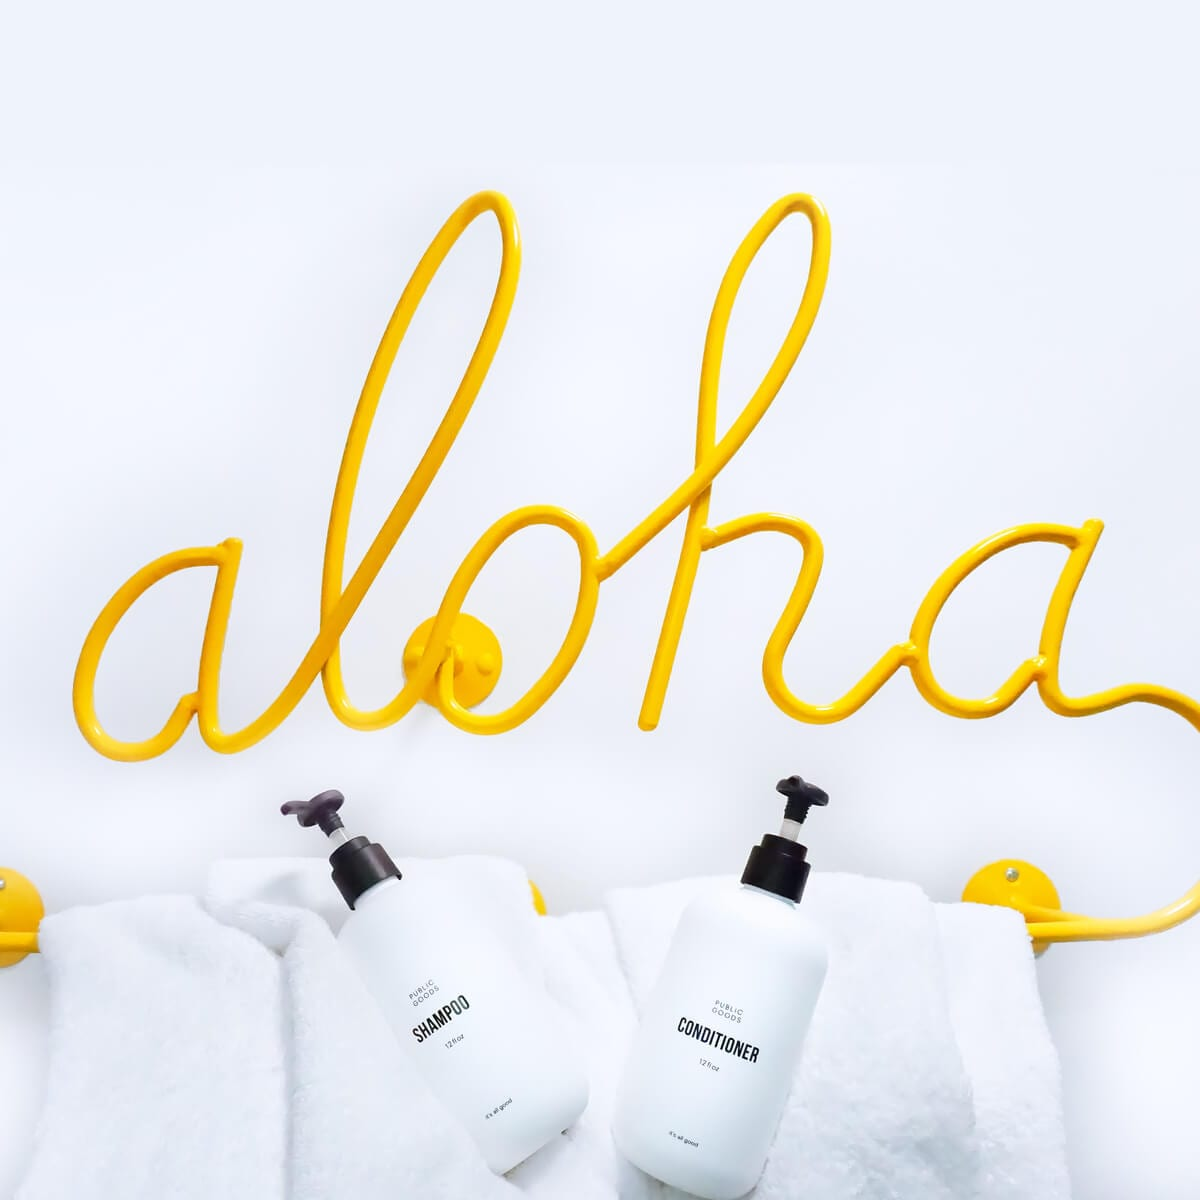 aloha sign, public goods shampoo and conditioner bottles, towels